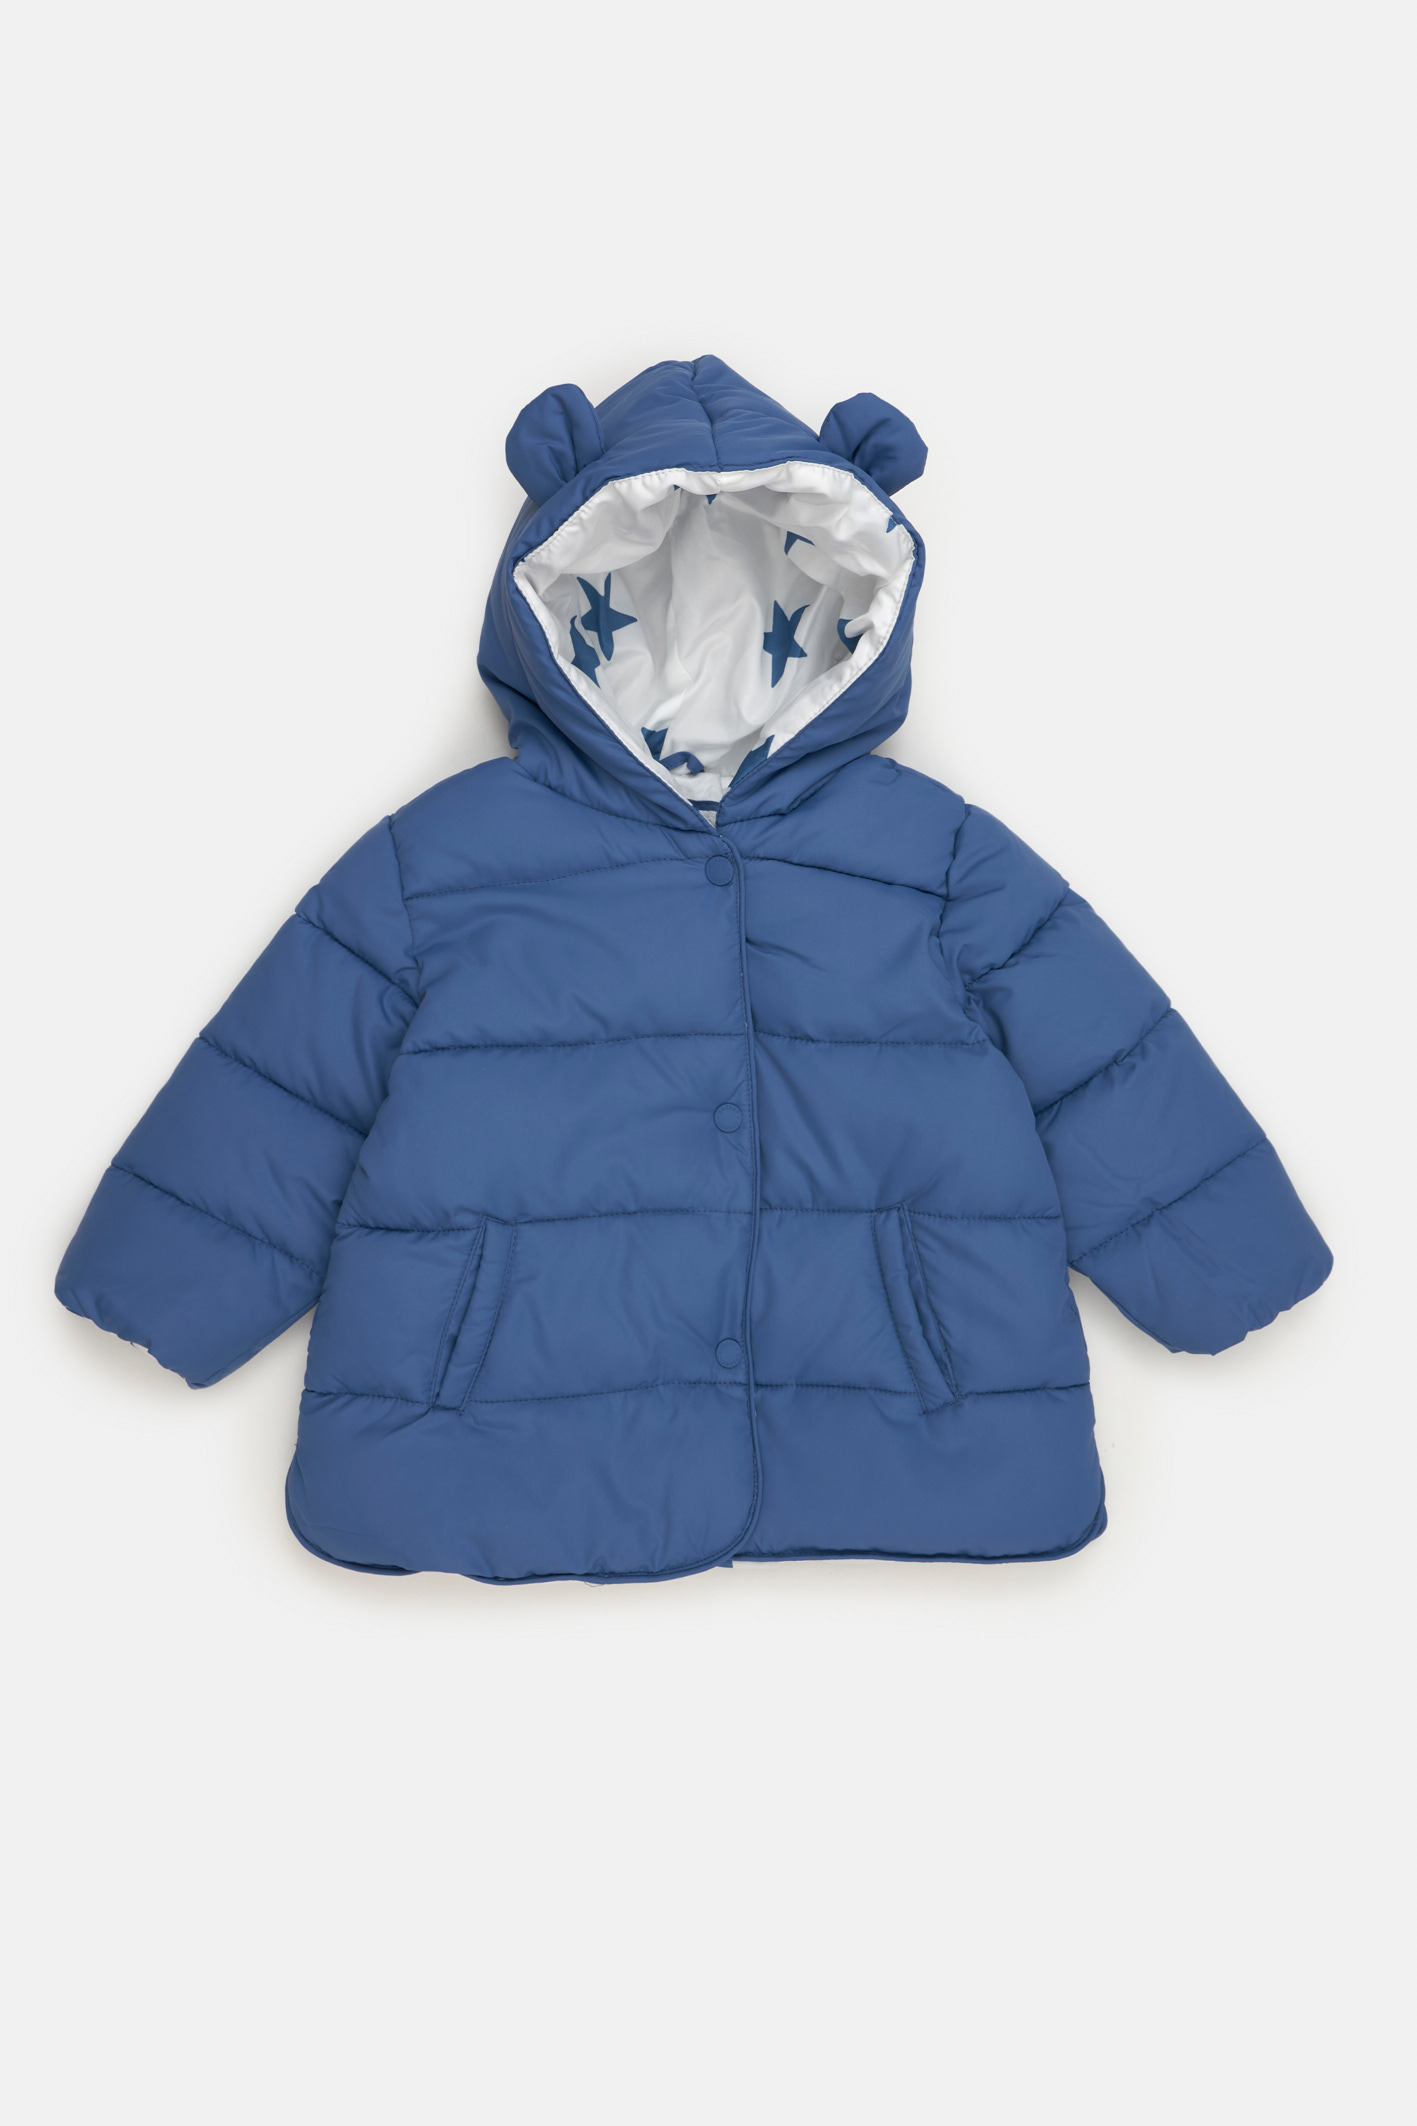 cheeky_campera-bear-boy-1-3_34-25-2021__picture-82886